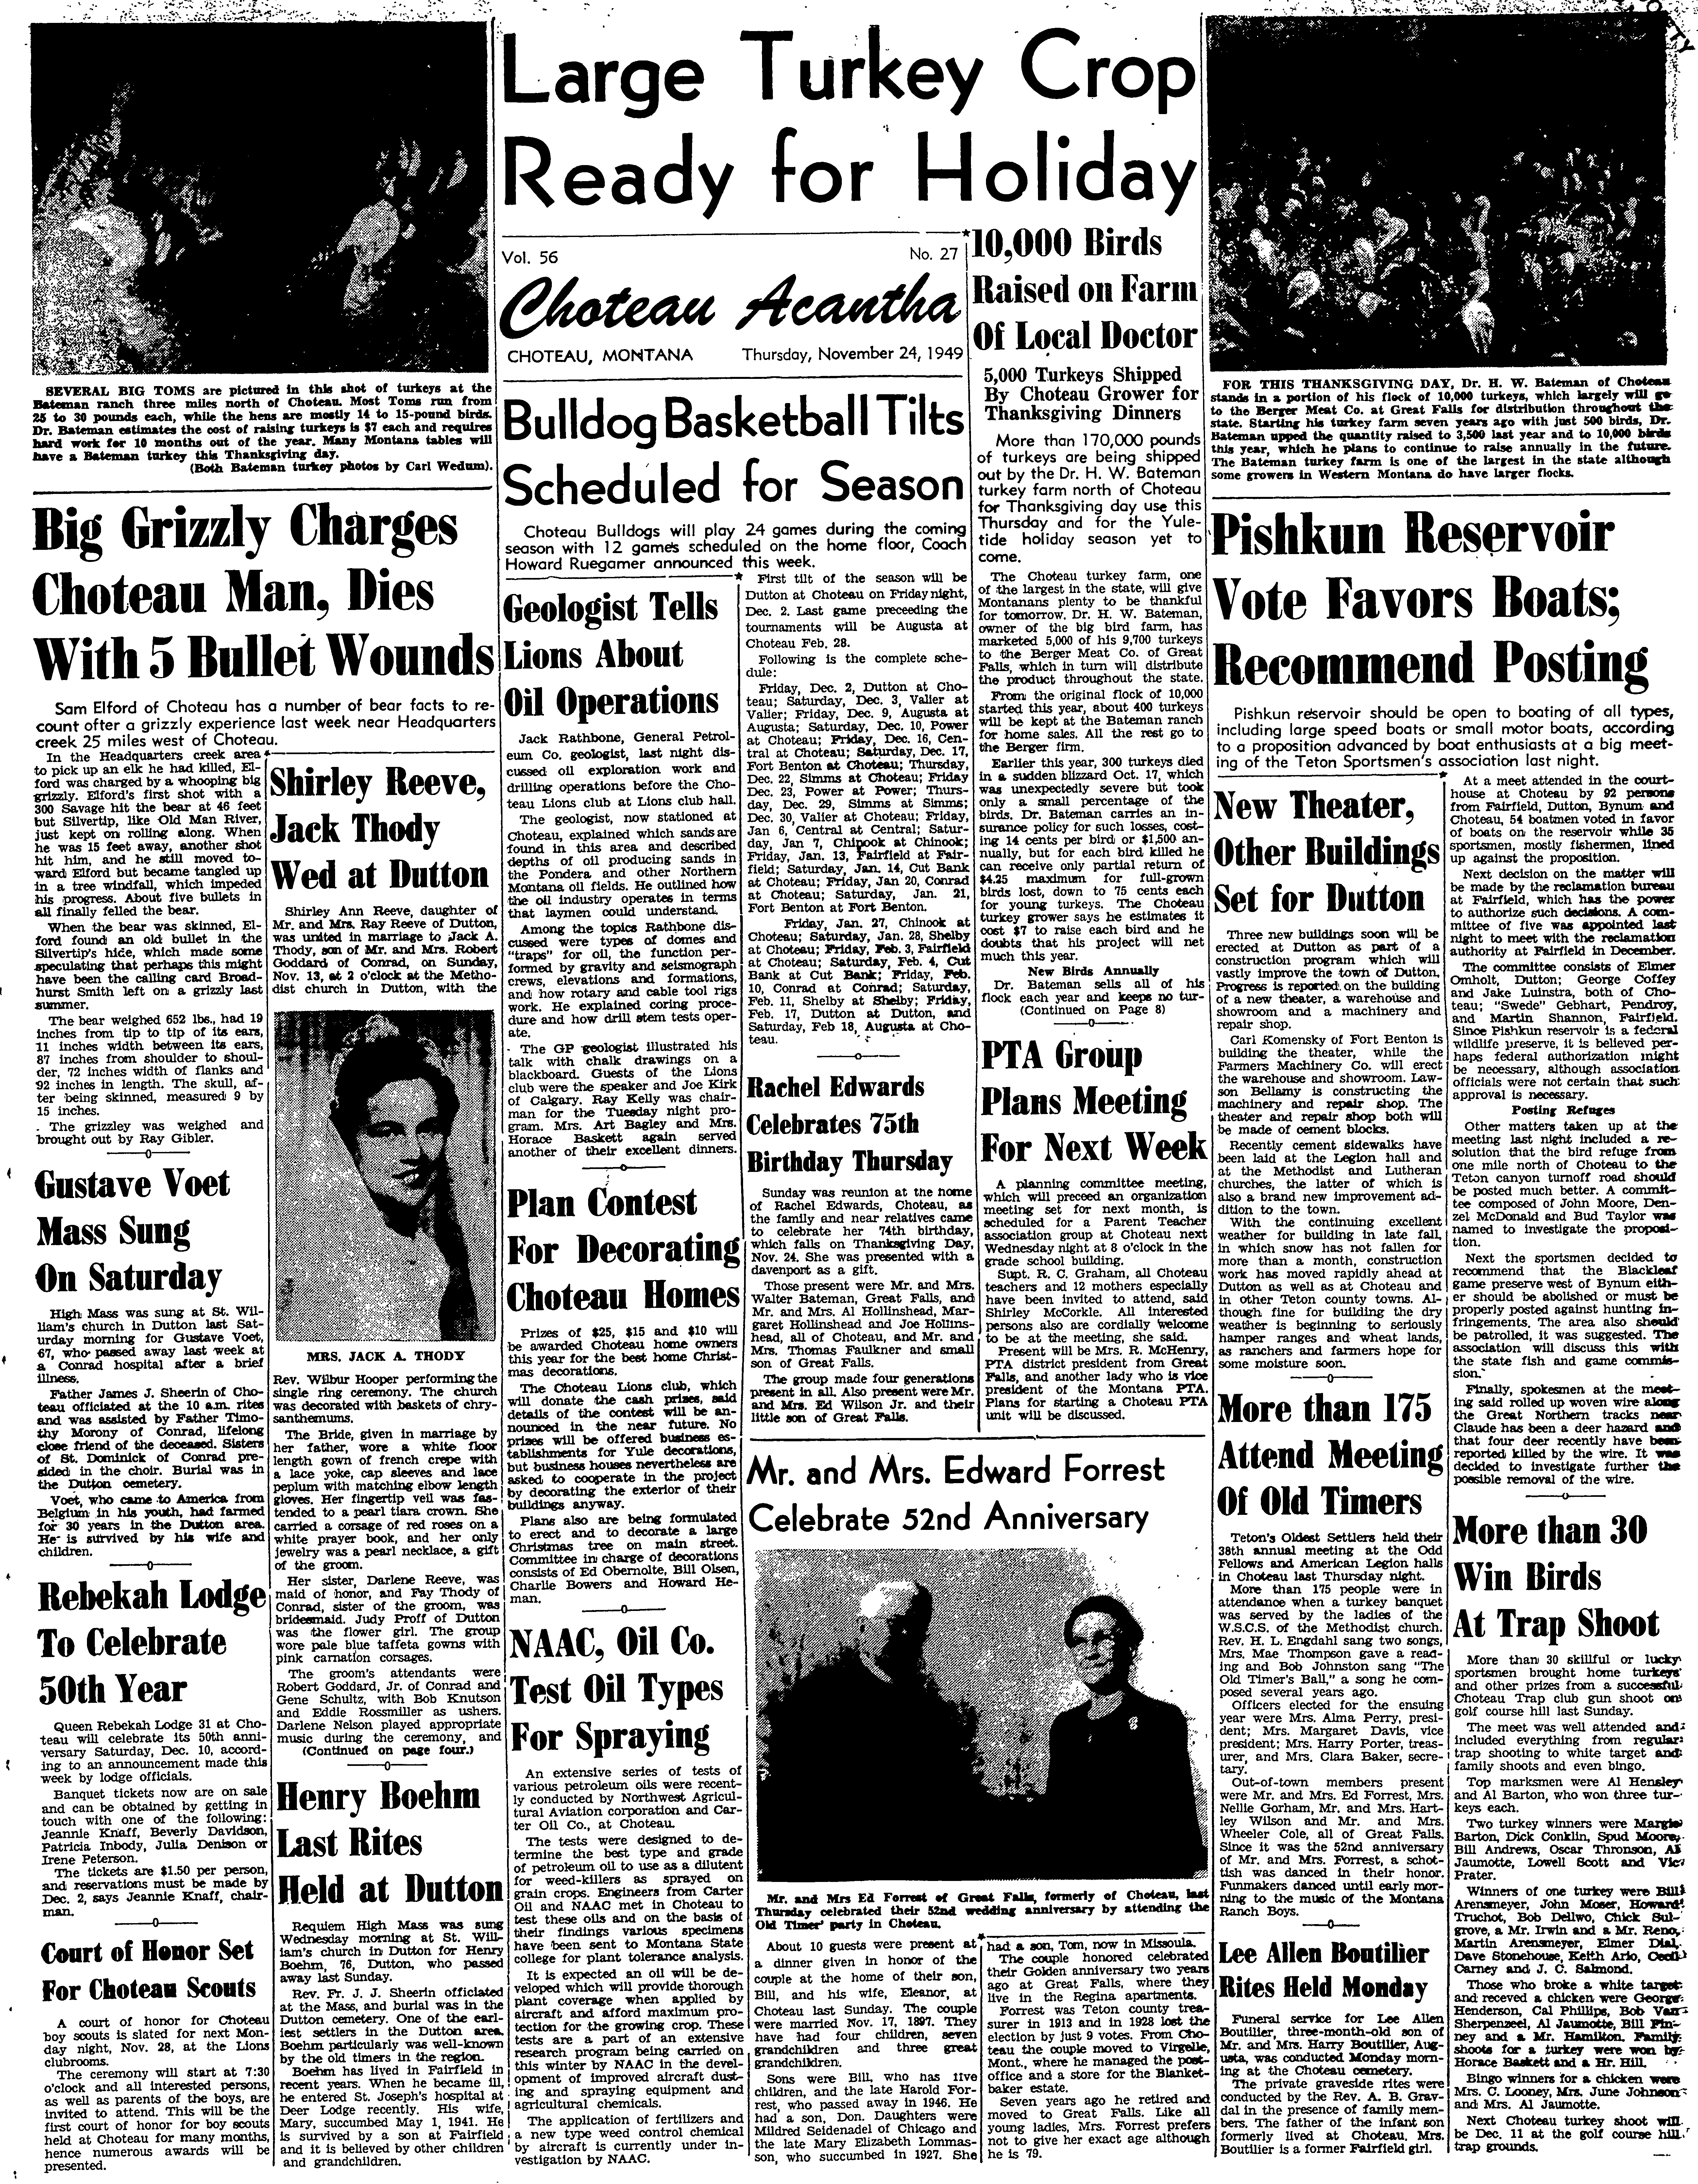 The Choteau Acantha November 24 1949 Page 1 Image